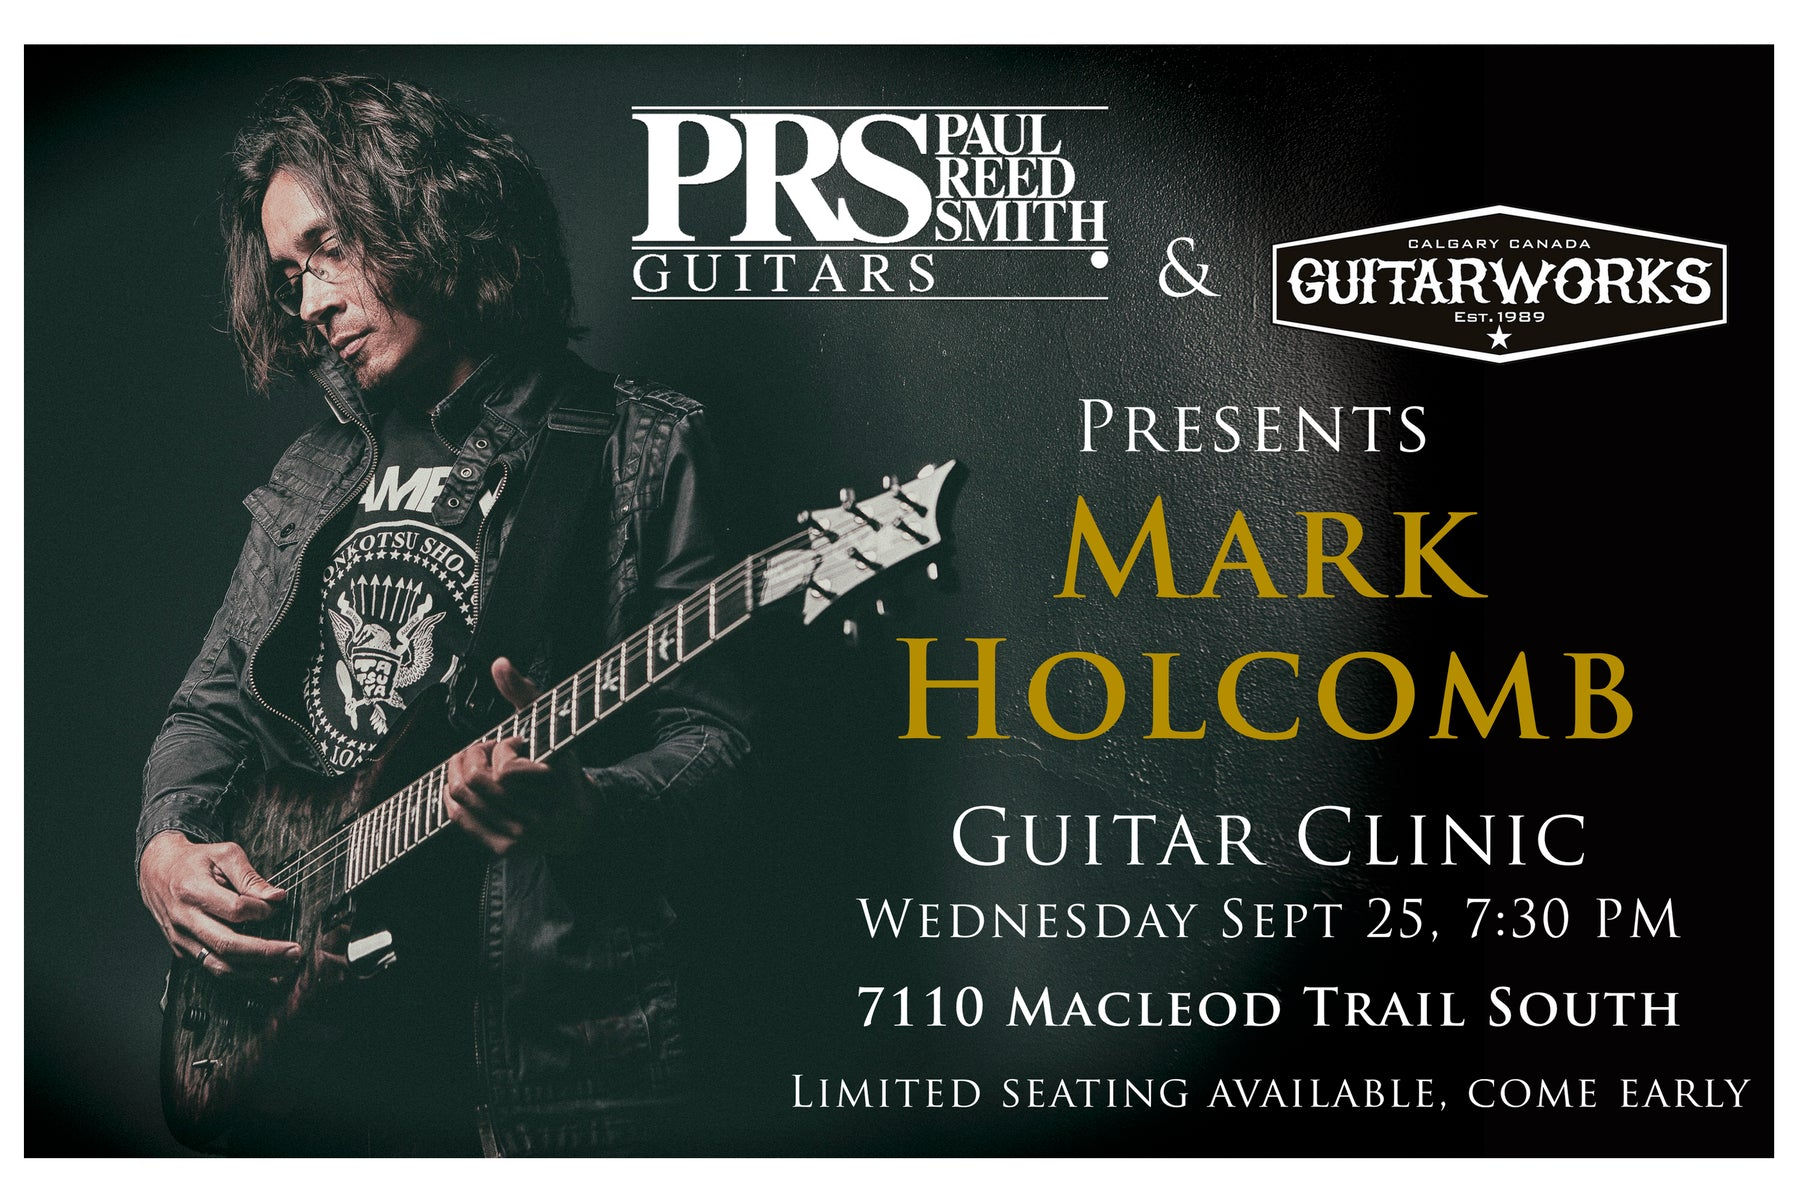 Free Live PRS Clinic with Mark Holcomb of Periphery